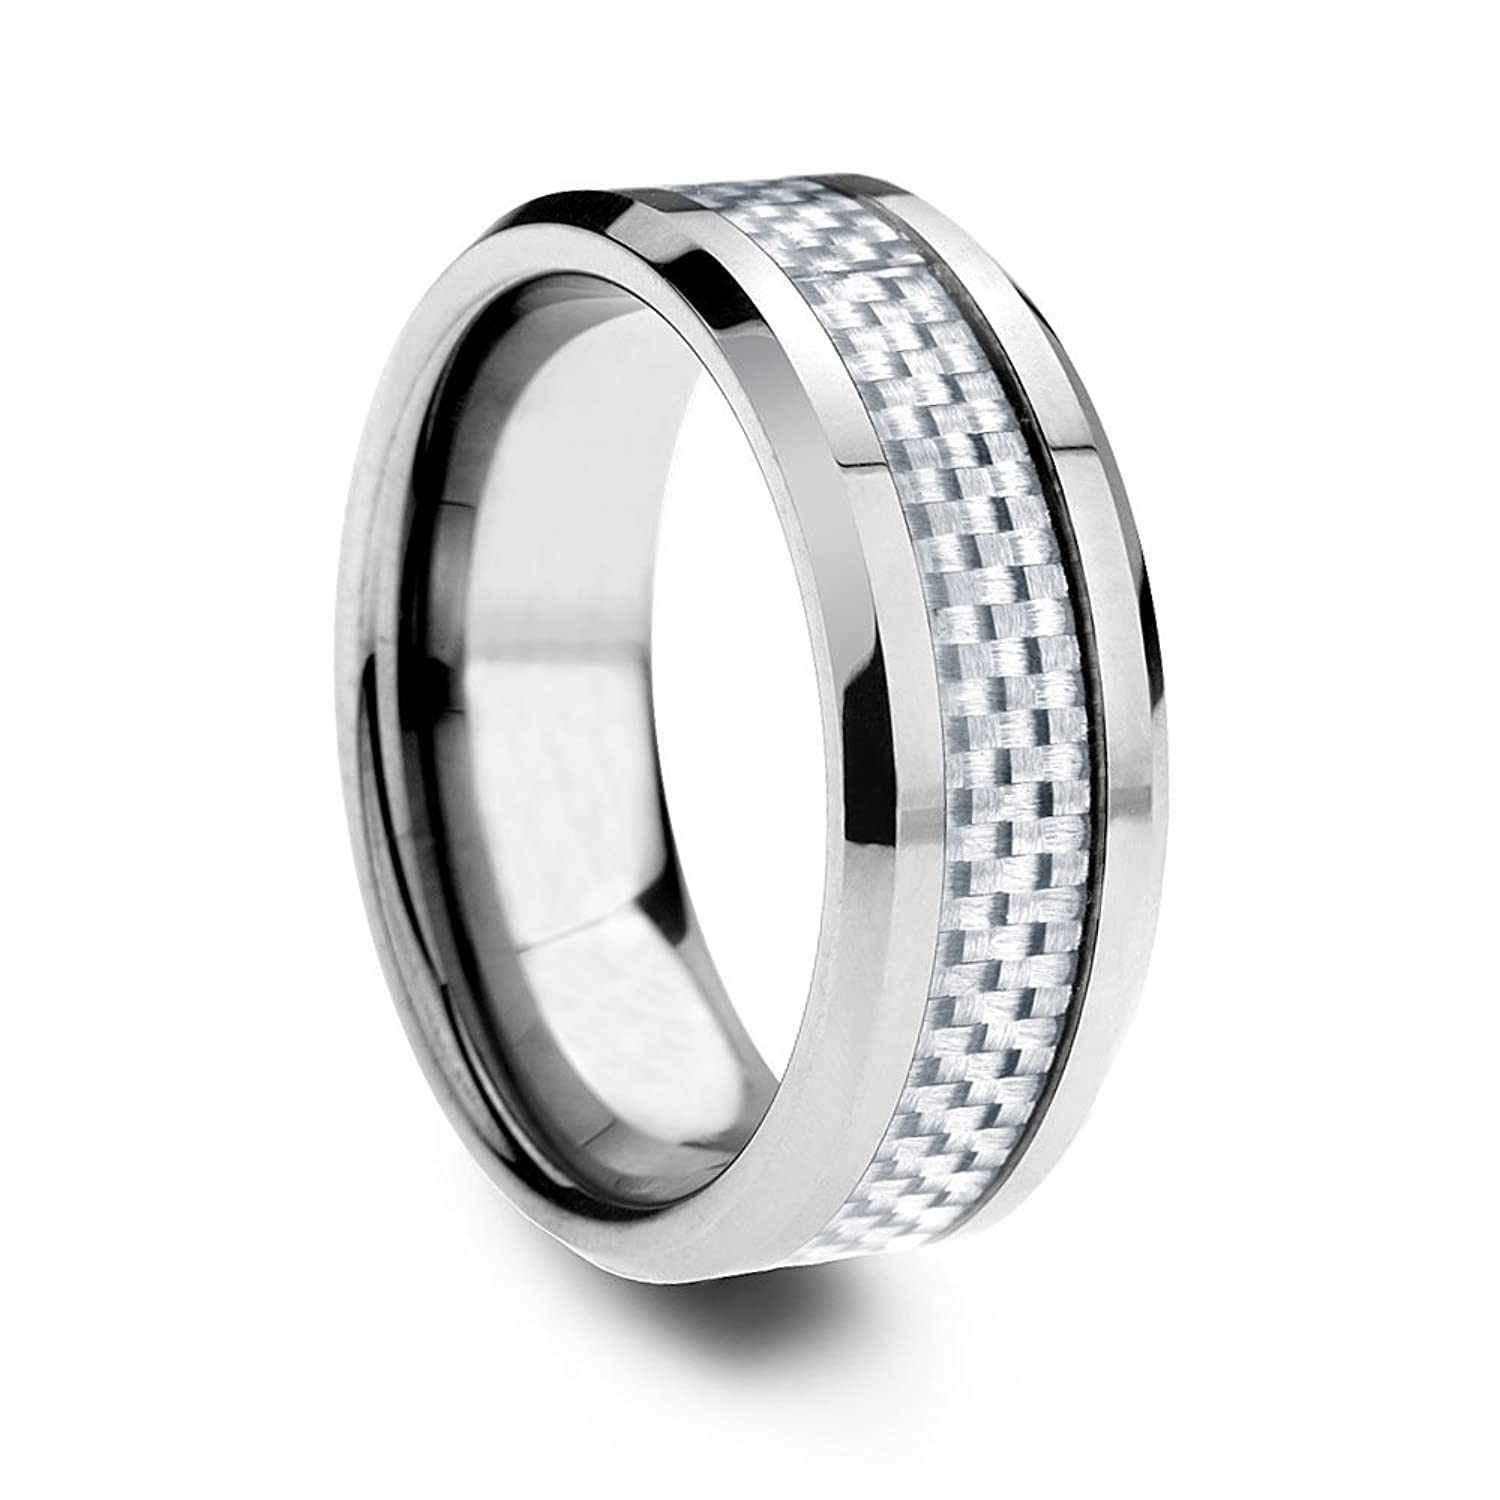 ring wedding rings com with carbide luxurious dp edge jewelry carbon ulxgedvl tungsten fiber white amazon beveled